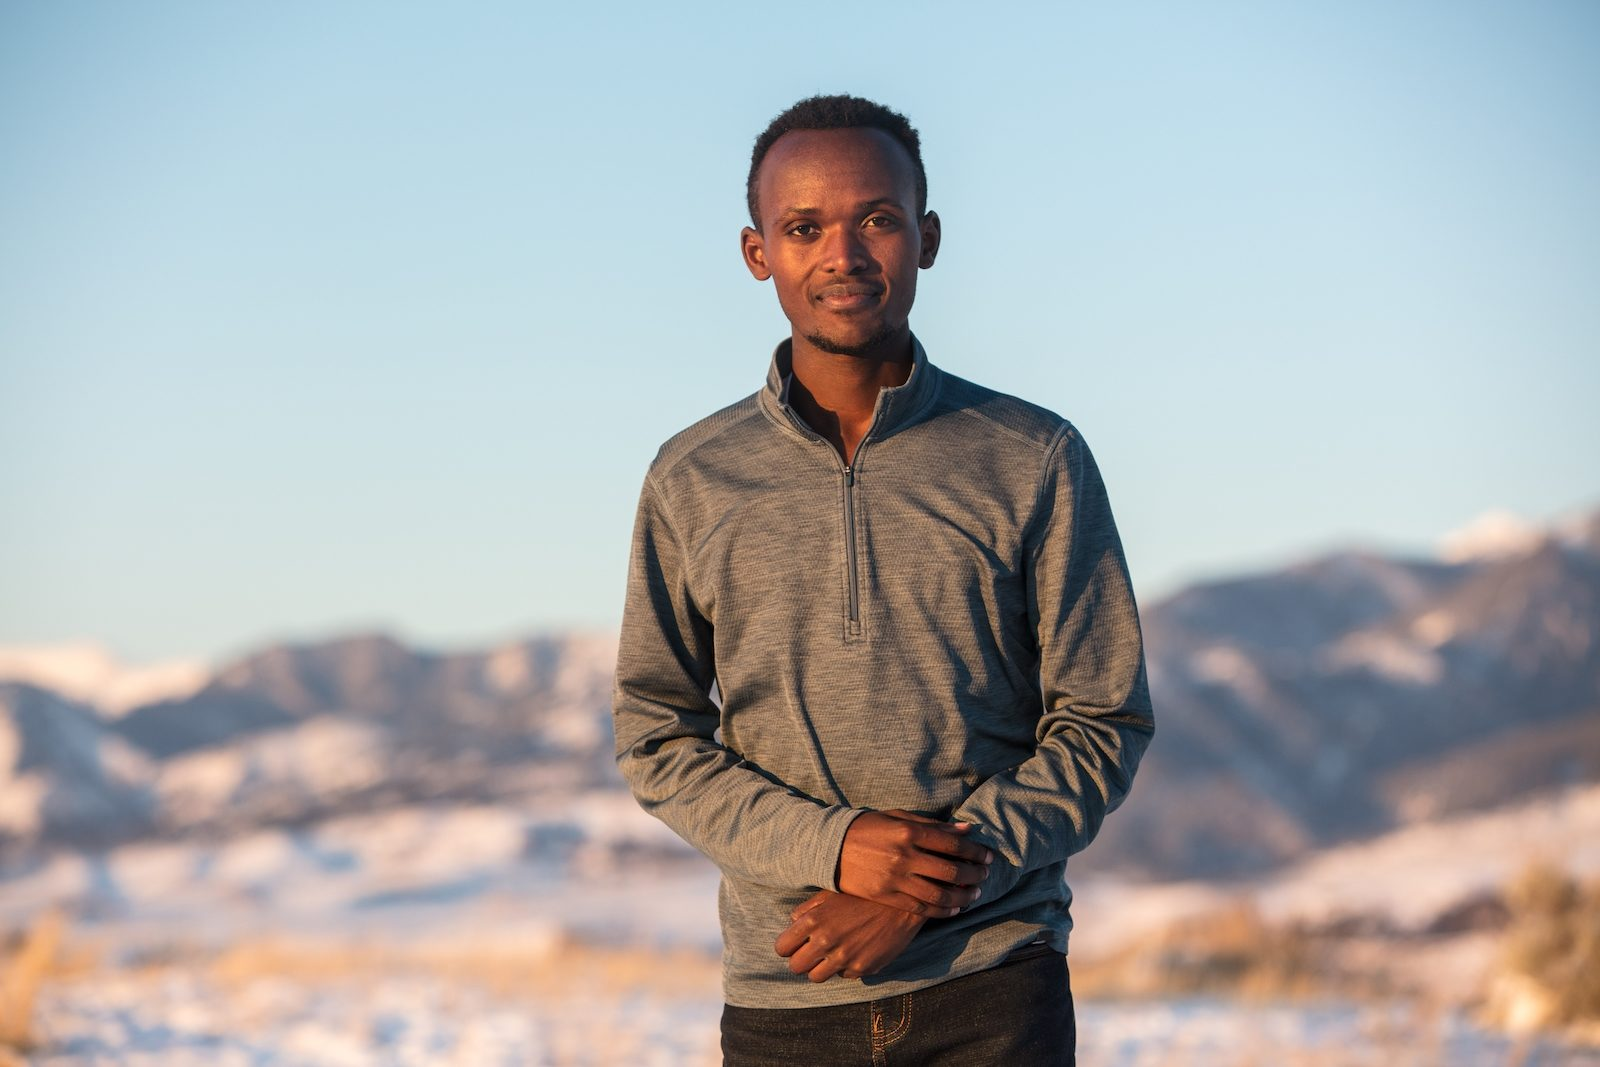 A man stands in a gray shirt in front of snowy hills, smiling at the camera.